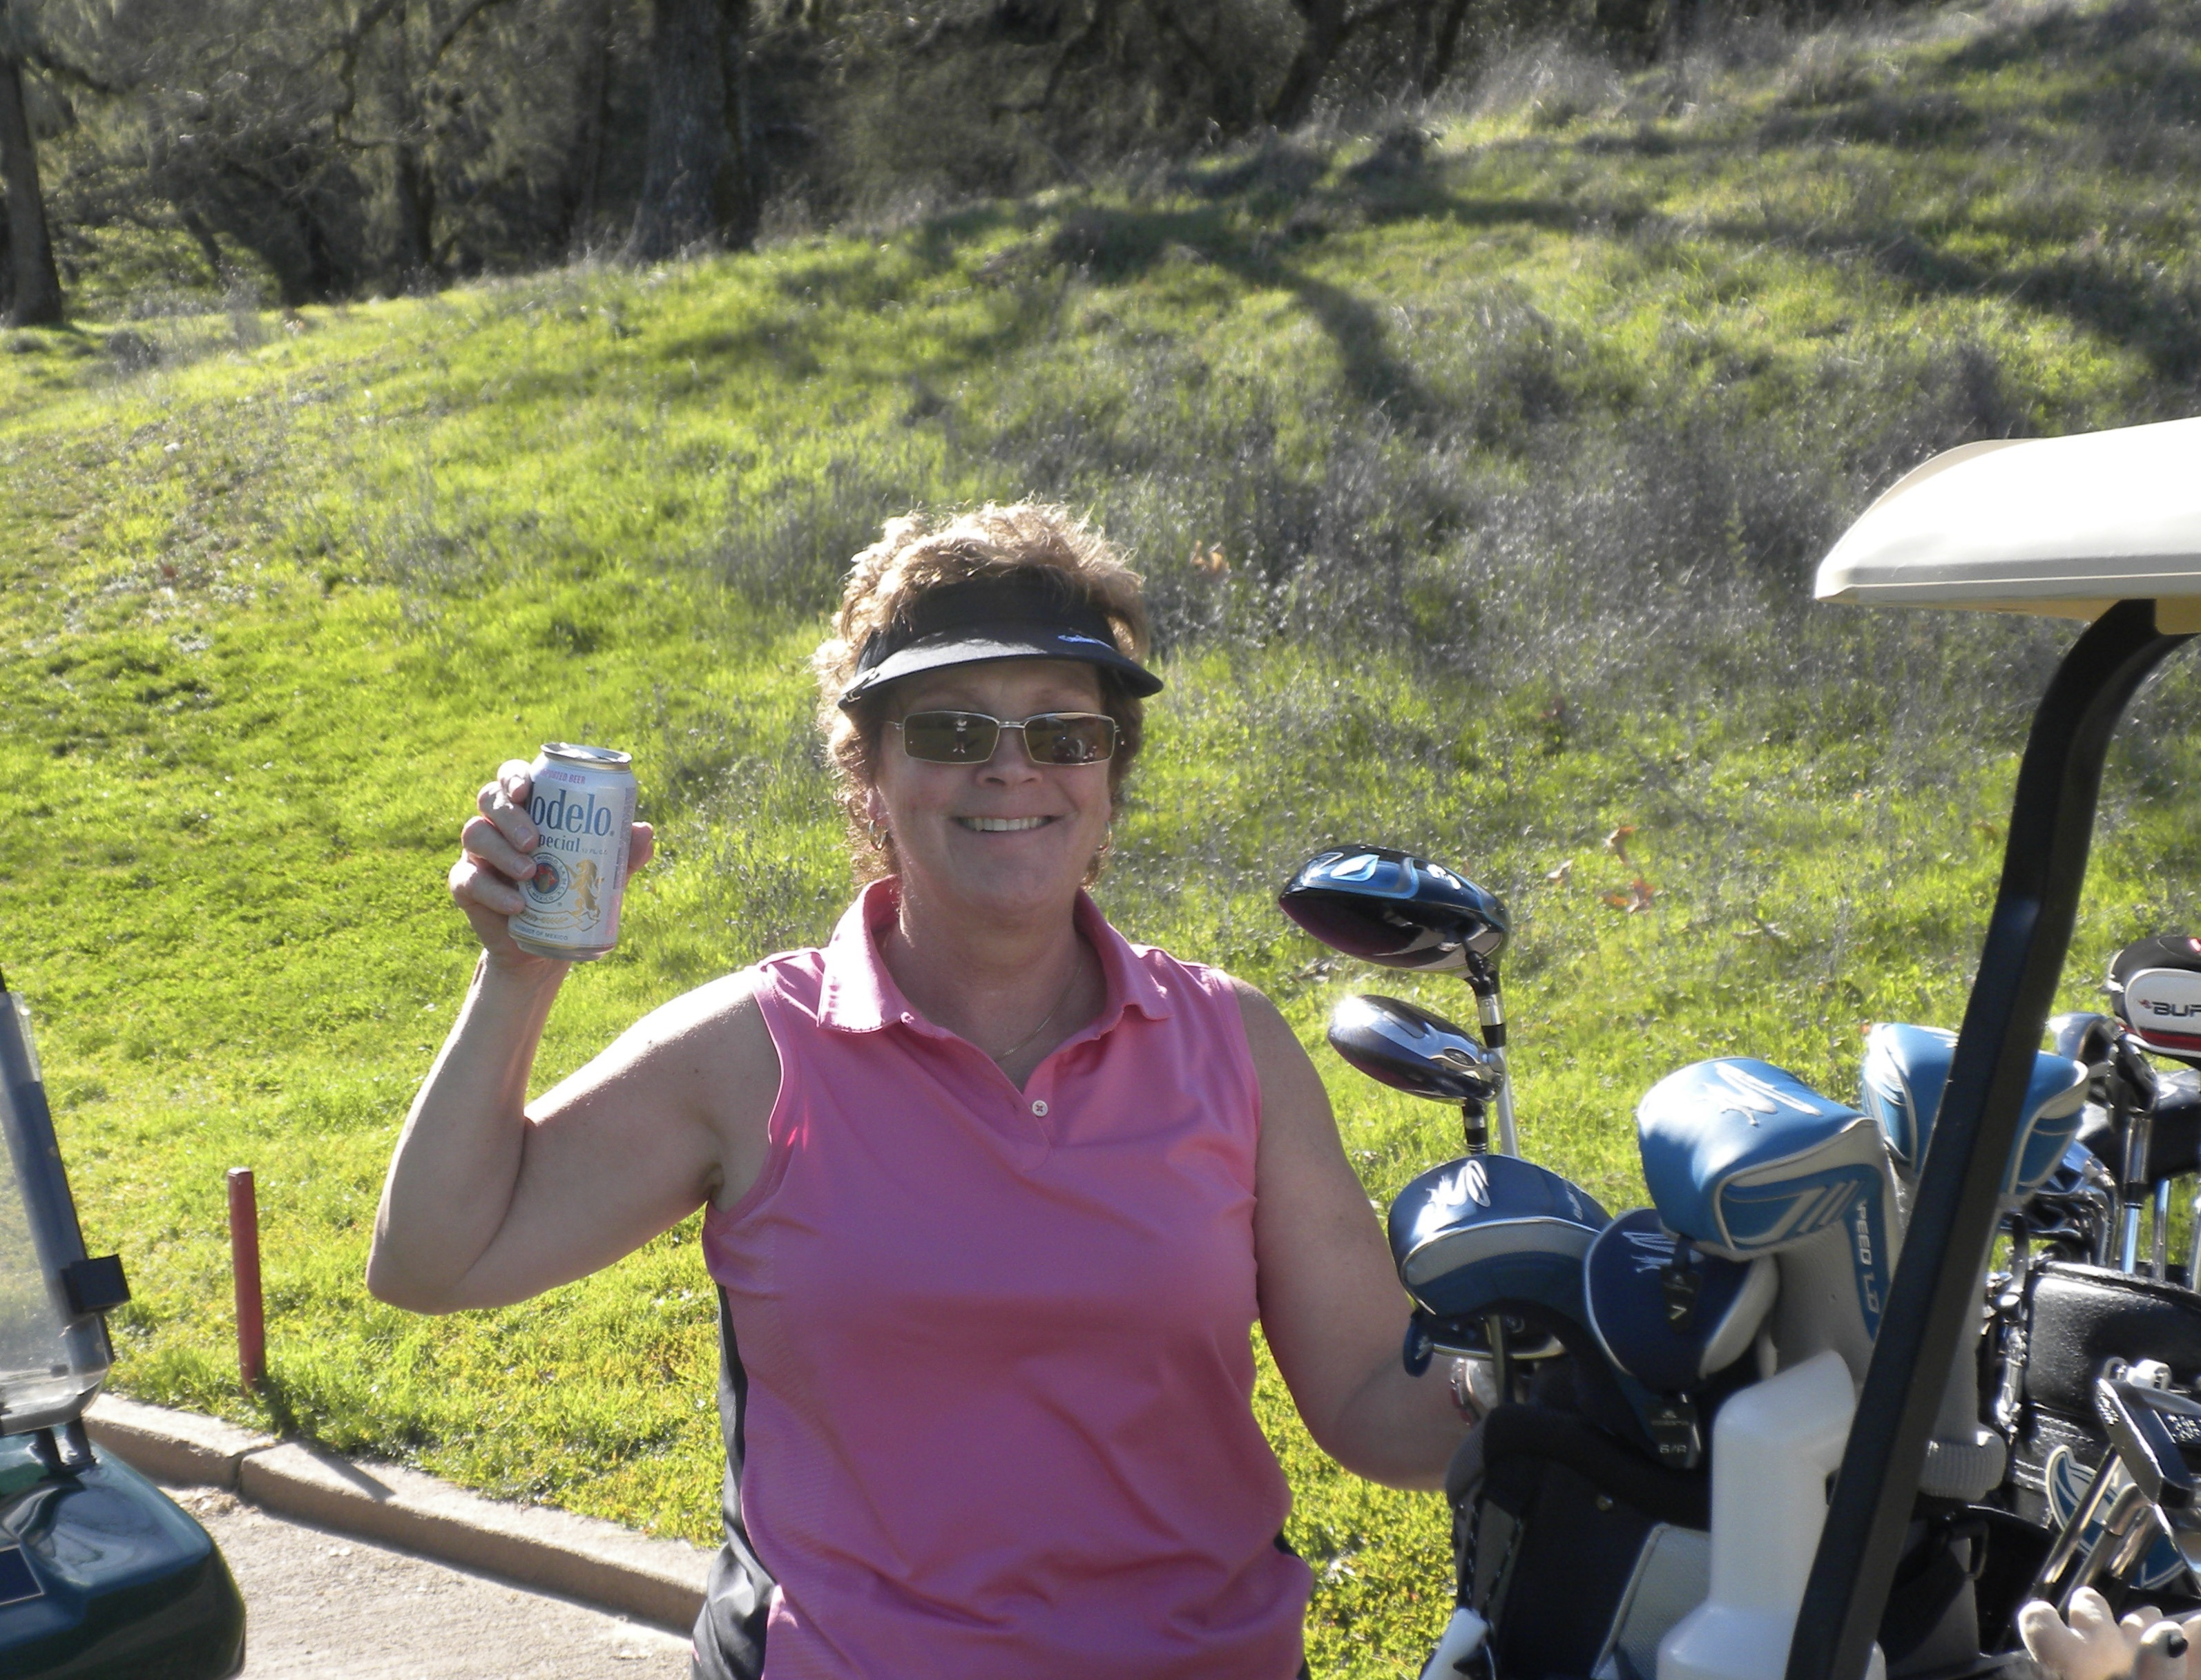 Gayle Newgren Charity Golf Tournament gallery image #2